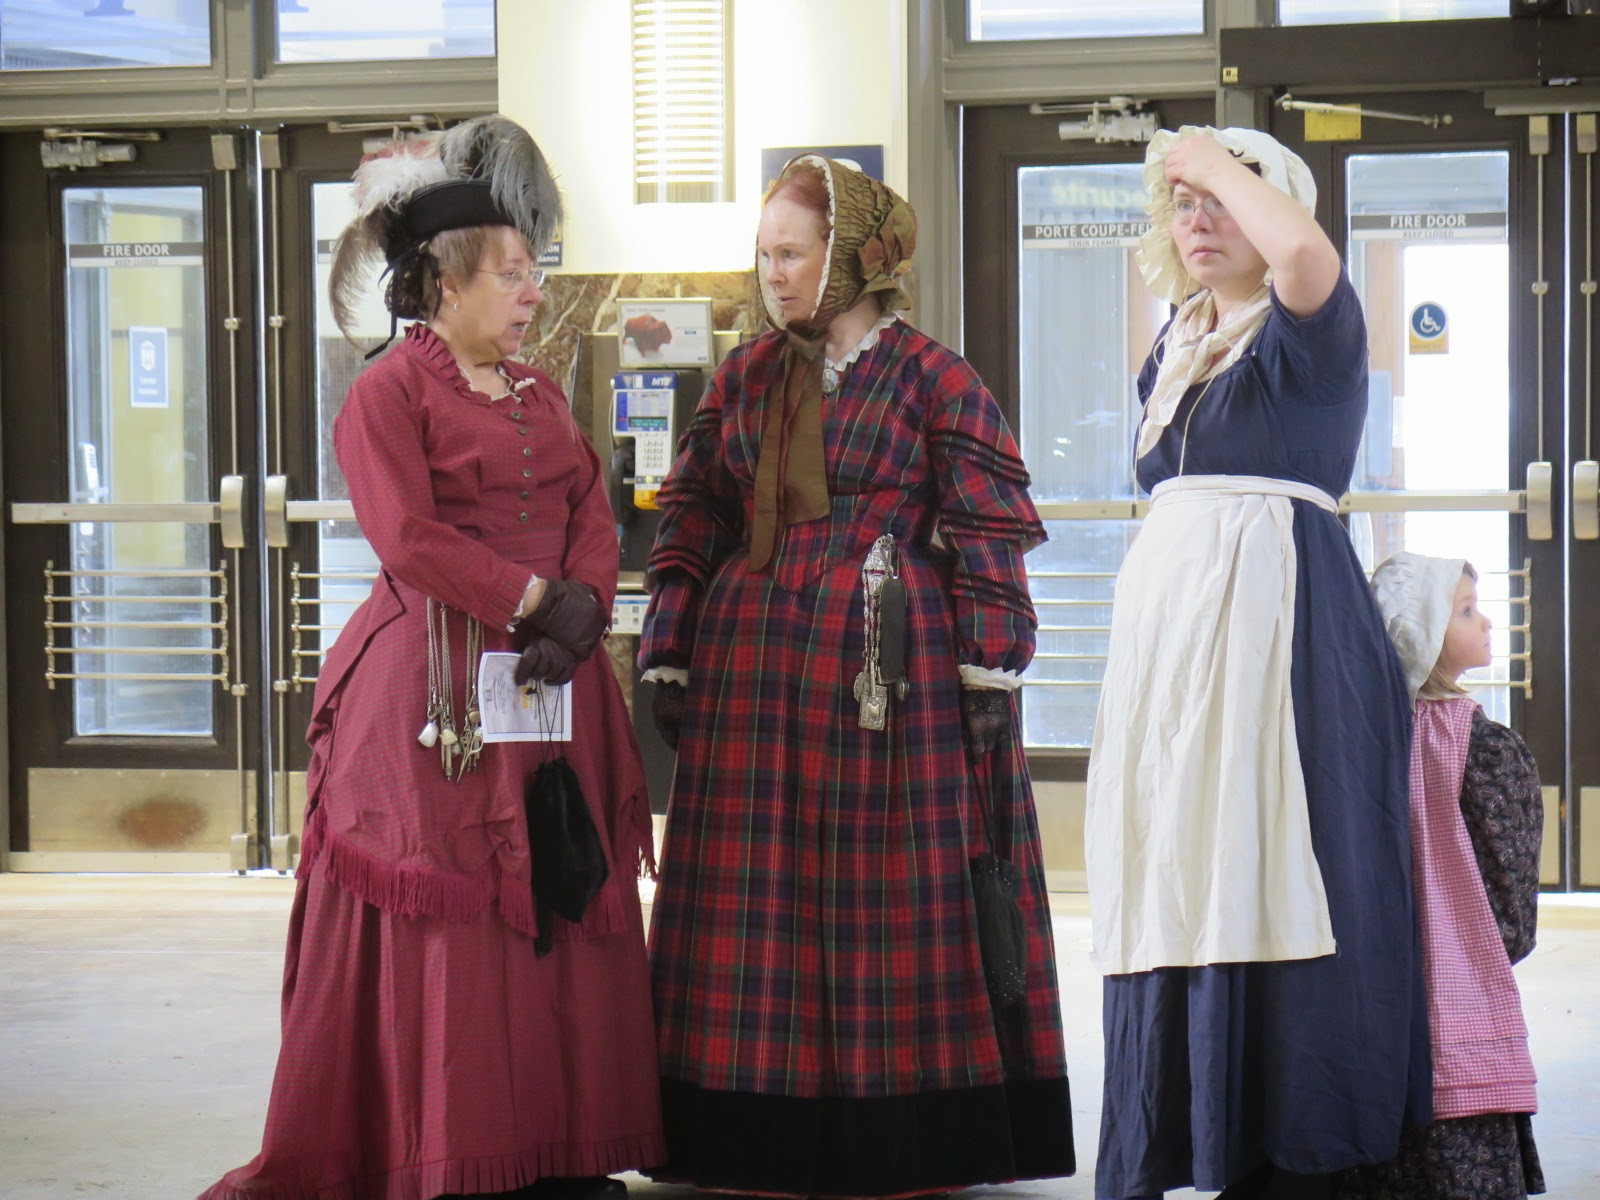 Ladies from the Manitoba Living History Society